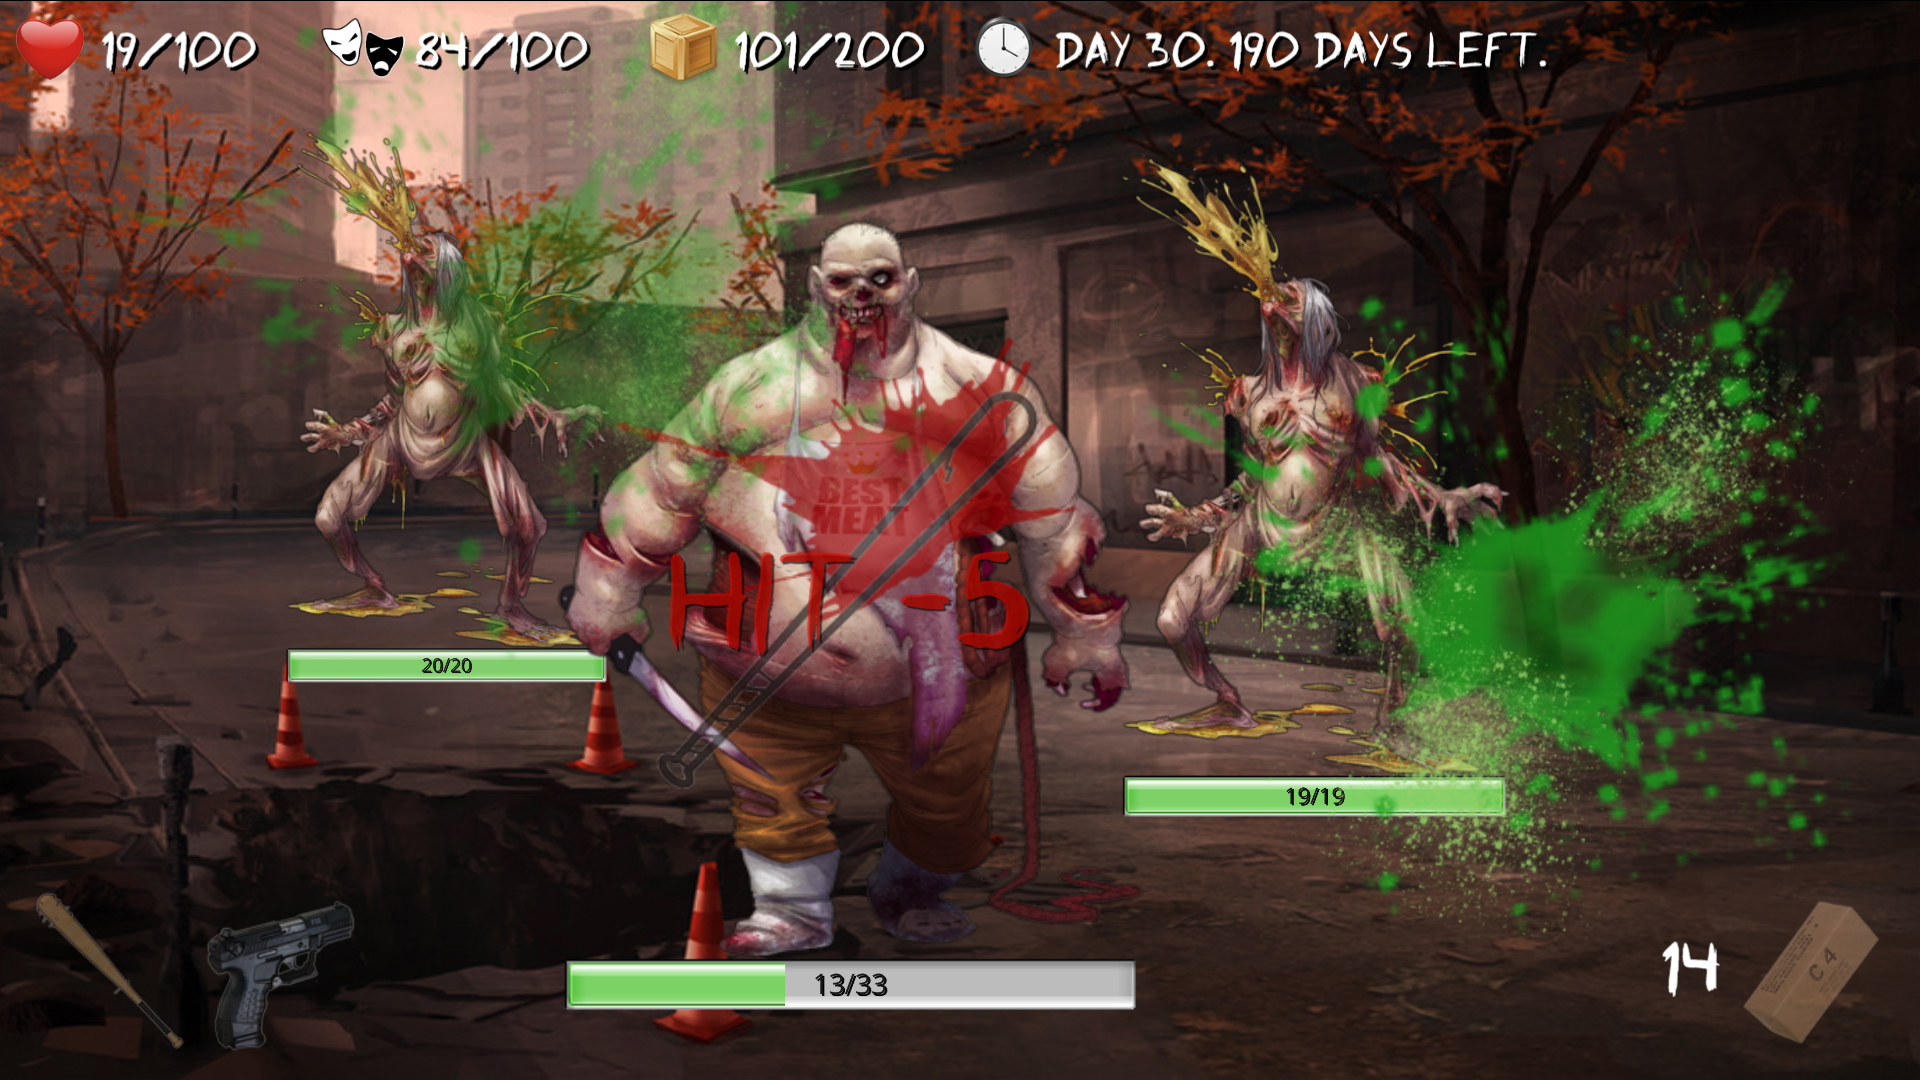 THE BEST ZOMBIE MMORPG